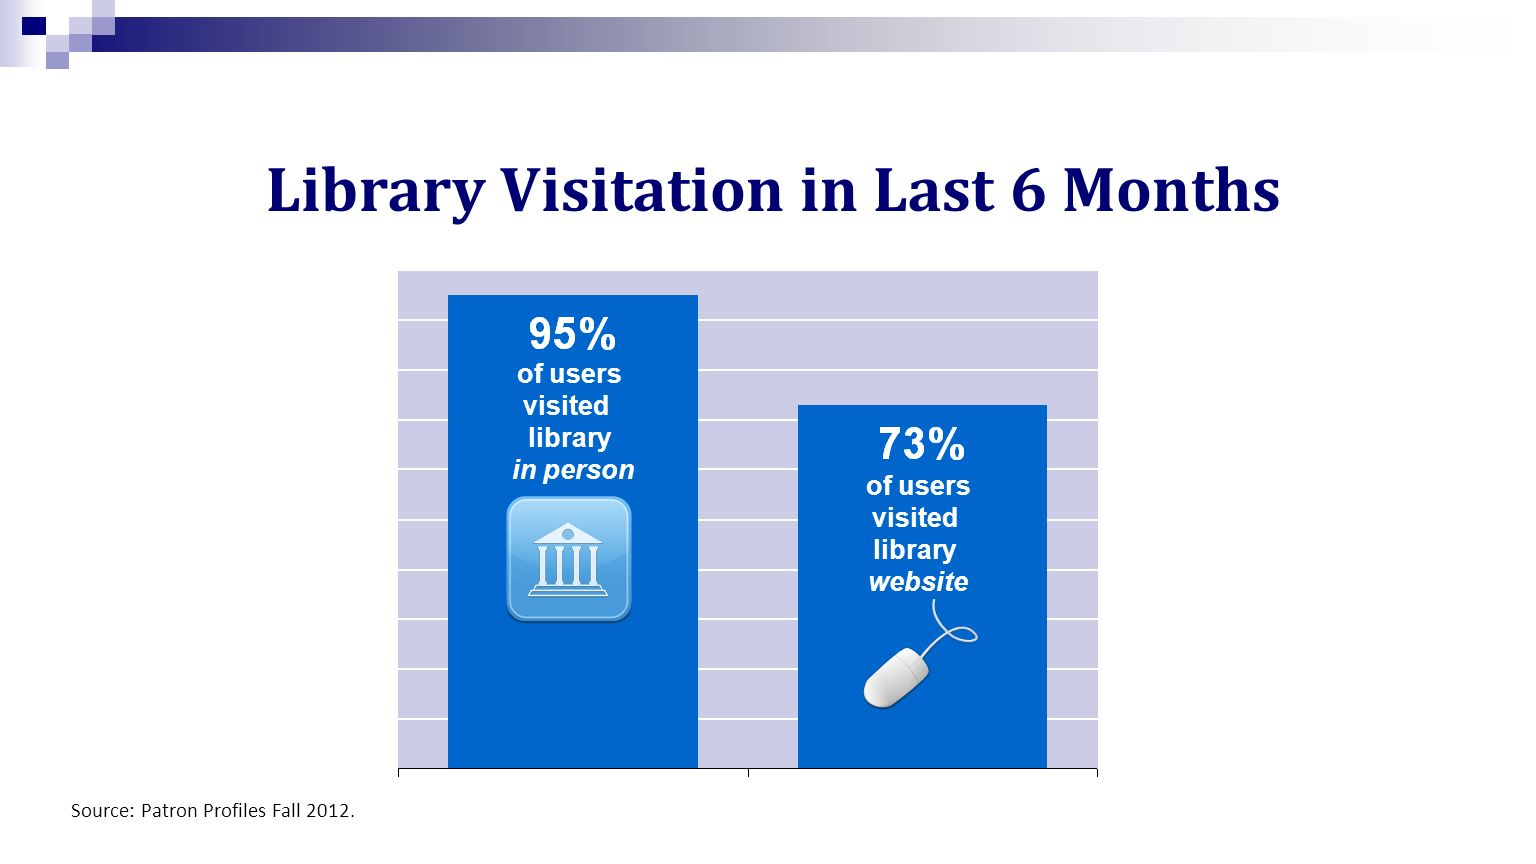 Library Visitation in Last 6 Months Source: Patron Profiles Fall 2012.